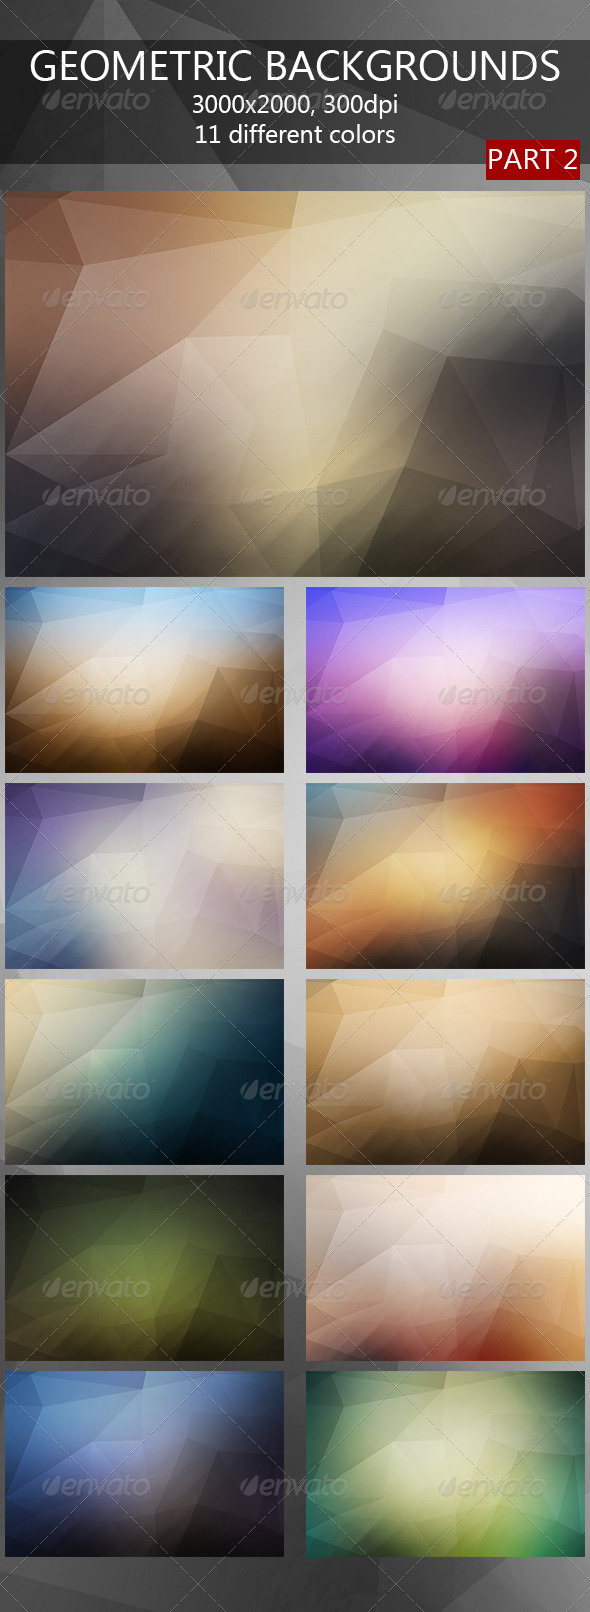 GraphicRiver Geometric Backgrounds 2 7917479